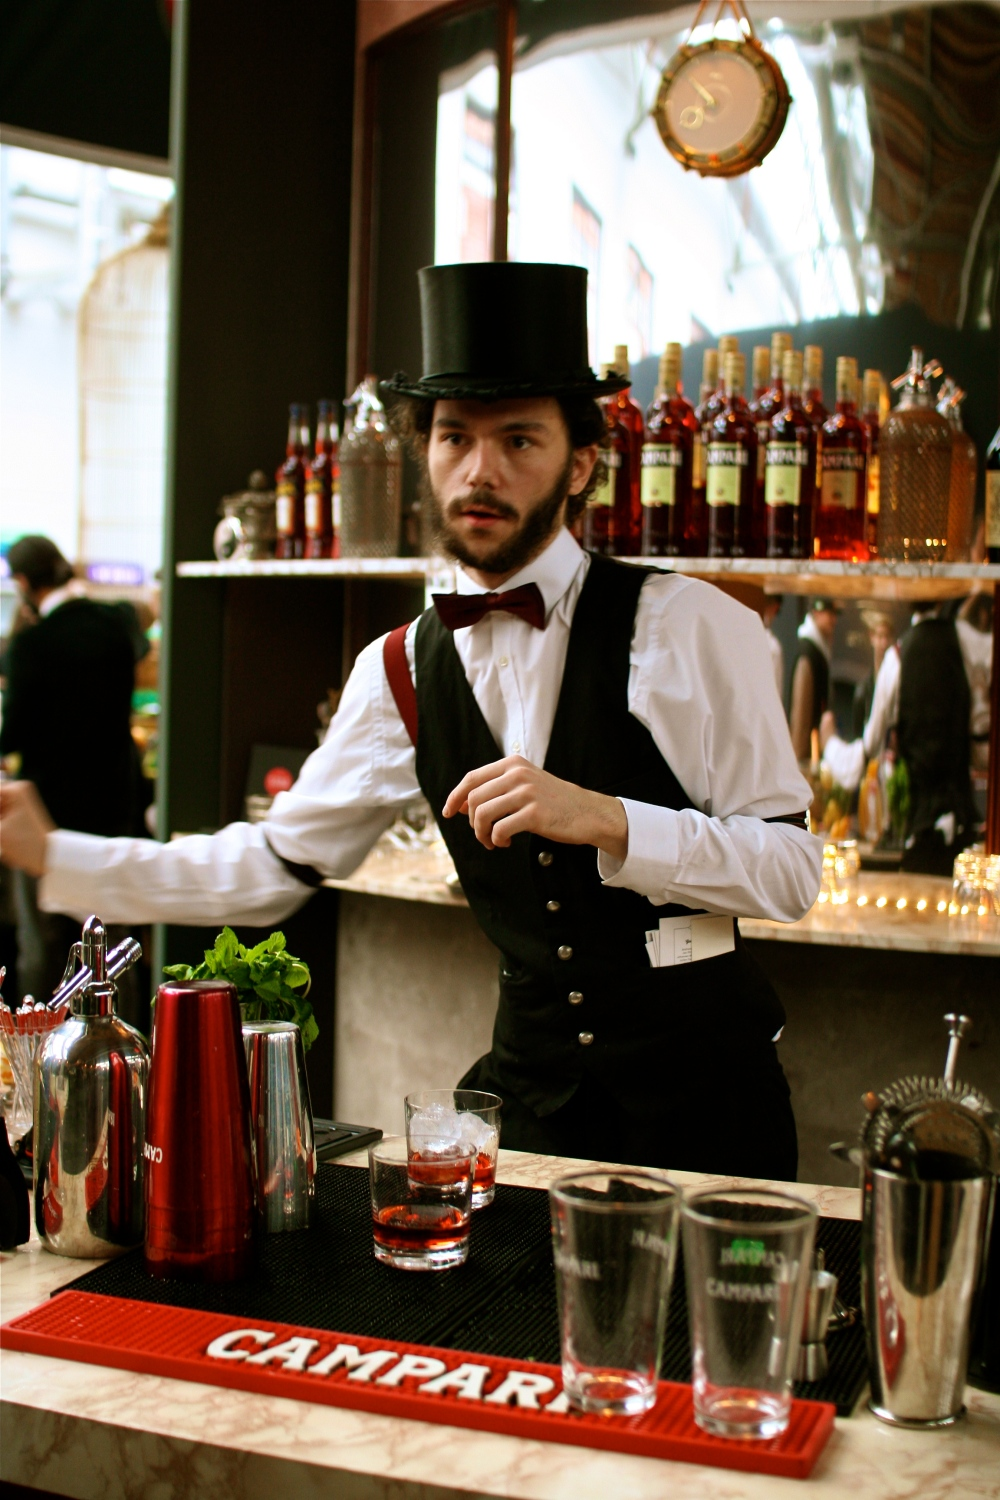 A sartorially stirred Negroni, sir? Certainly, sir.